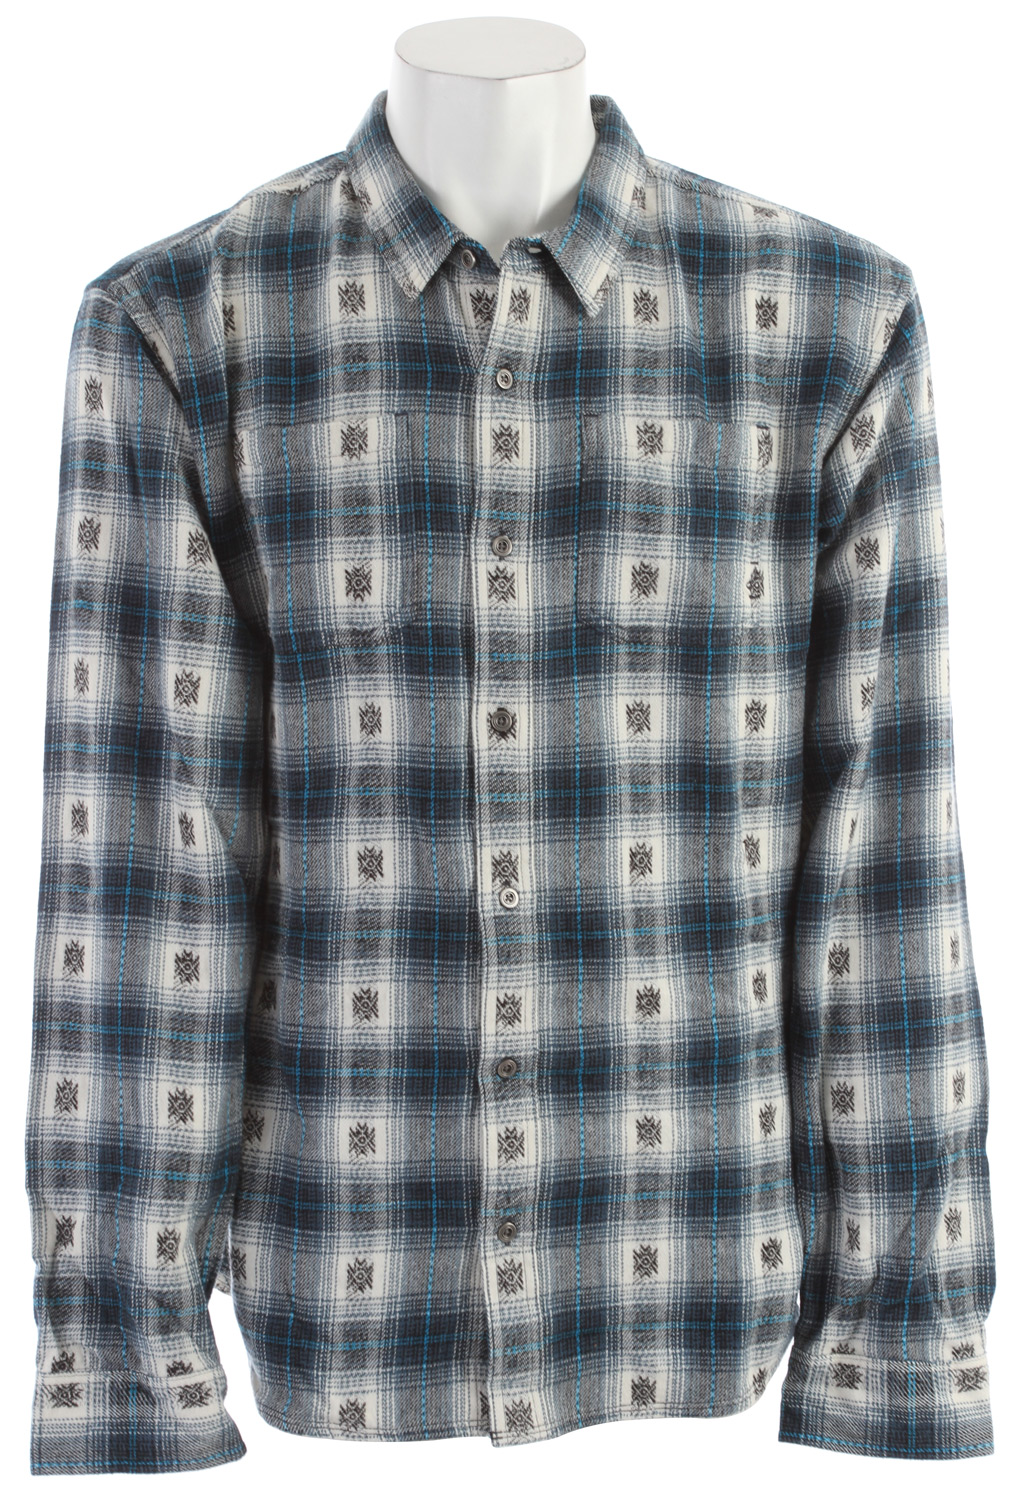 Entertainment Key Features of the Prana Hickory Flannel: 100% Cotton 6.8oz Yarn dyed flannel with geometric motif Front patch pocket Relaxed fit - $44.95